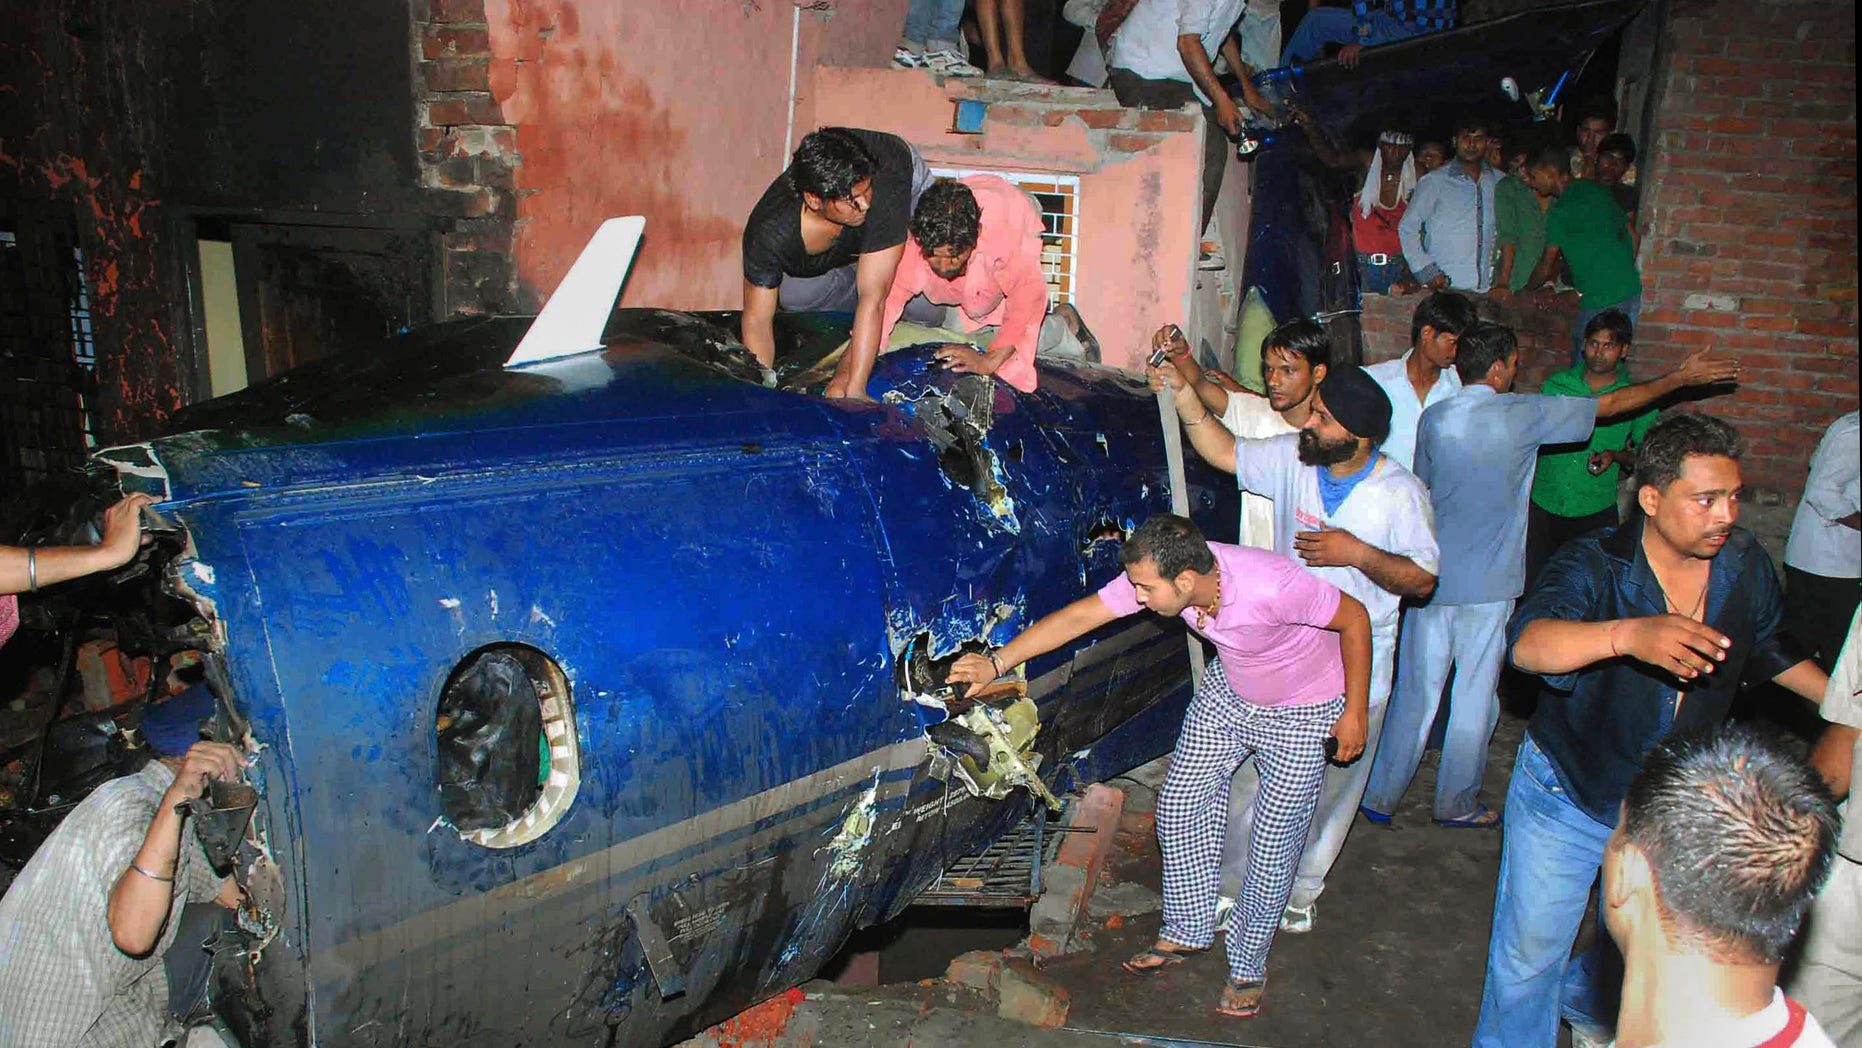 May 25: Indian residents search around the wreckage of a small plane after it crashed into a residential community in Faridabad, near New Delhi, India. A government official says the crash of a small chartered plane in a residential area on the outskirts of the Indian capital has killed at least 10 people and injured another two. (AP)